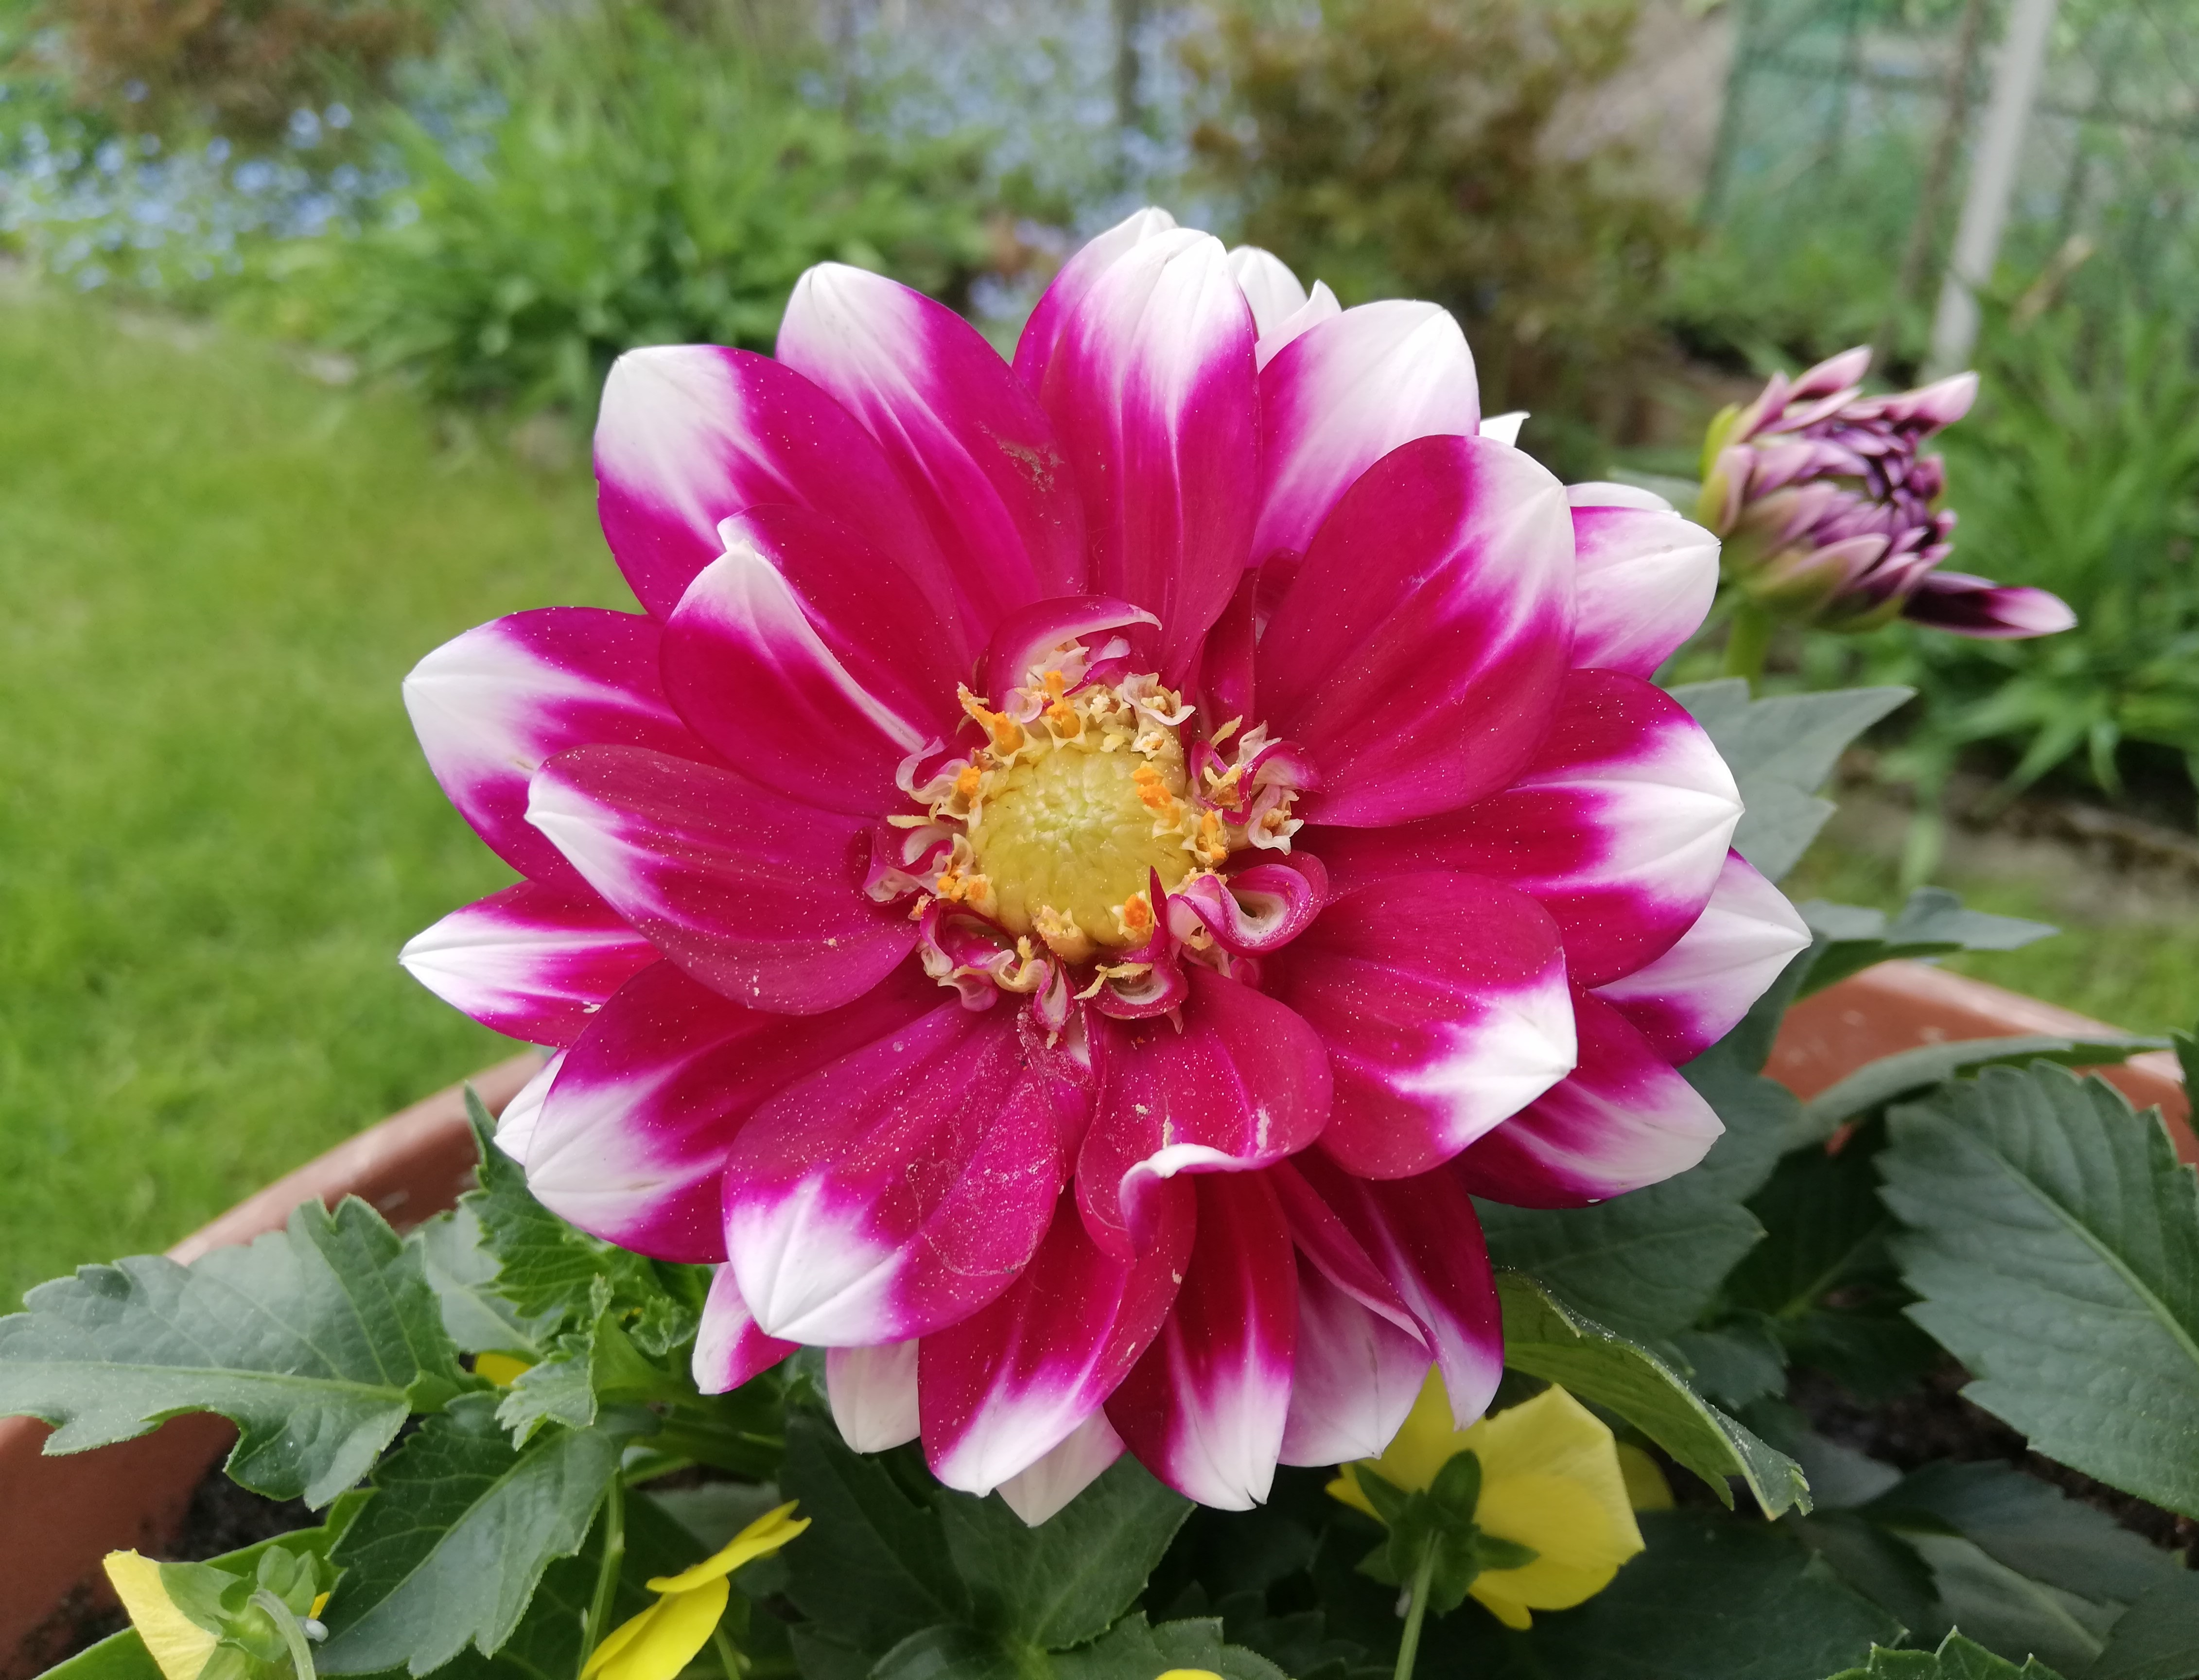 Dahlia Pinnata Wikipedia As a gift, dahlia flower expresses sentiments of dignity and elegancy. https en wikipedia org wiki dahlia pinnata